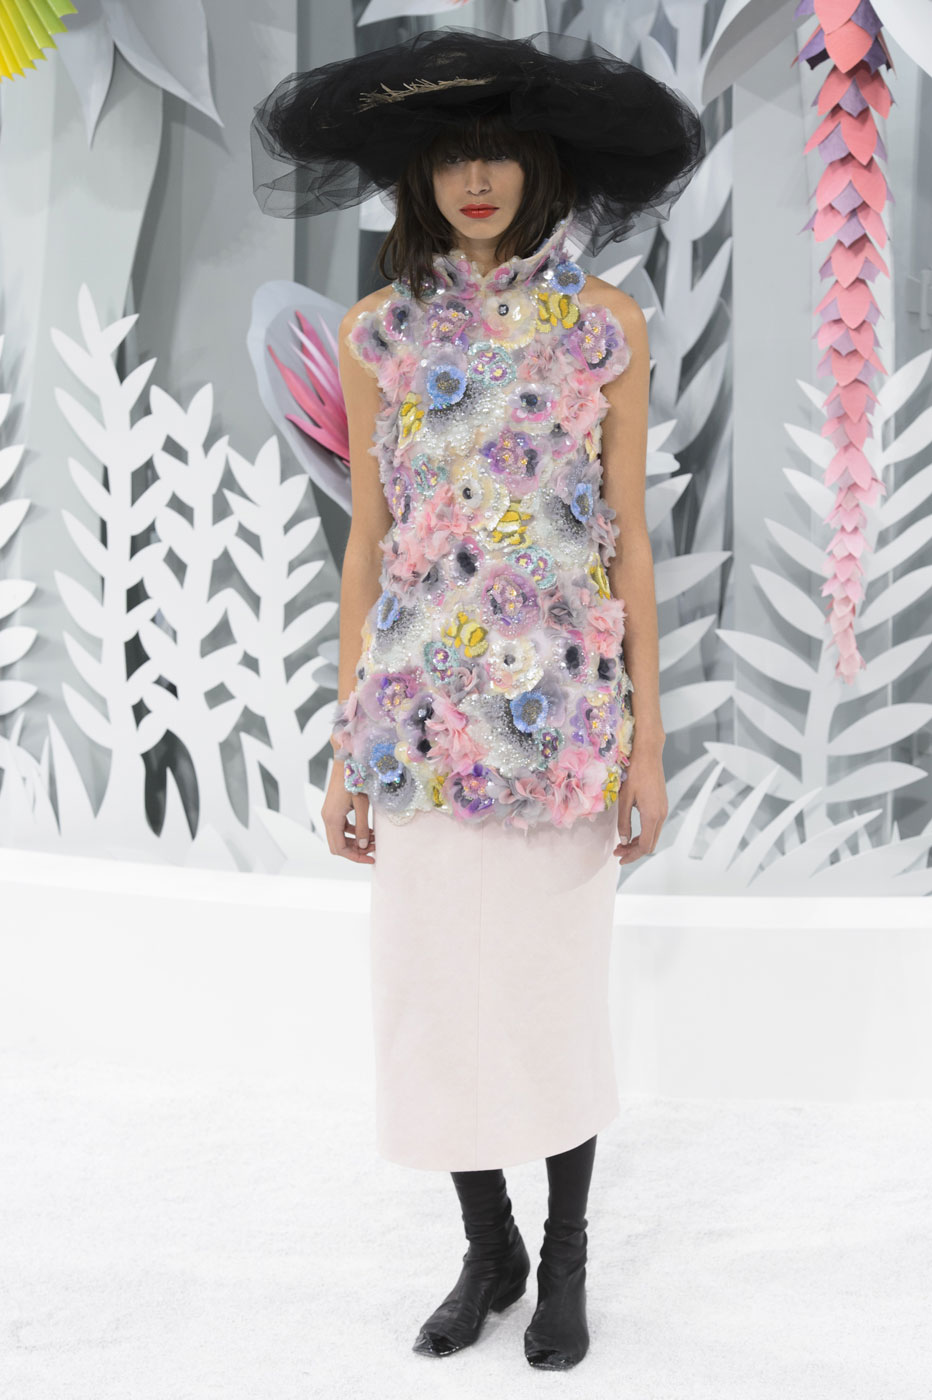 Chanel-fashion-runway-show-haute-couture-paris-spring-summer-2015-the-impression-127